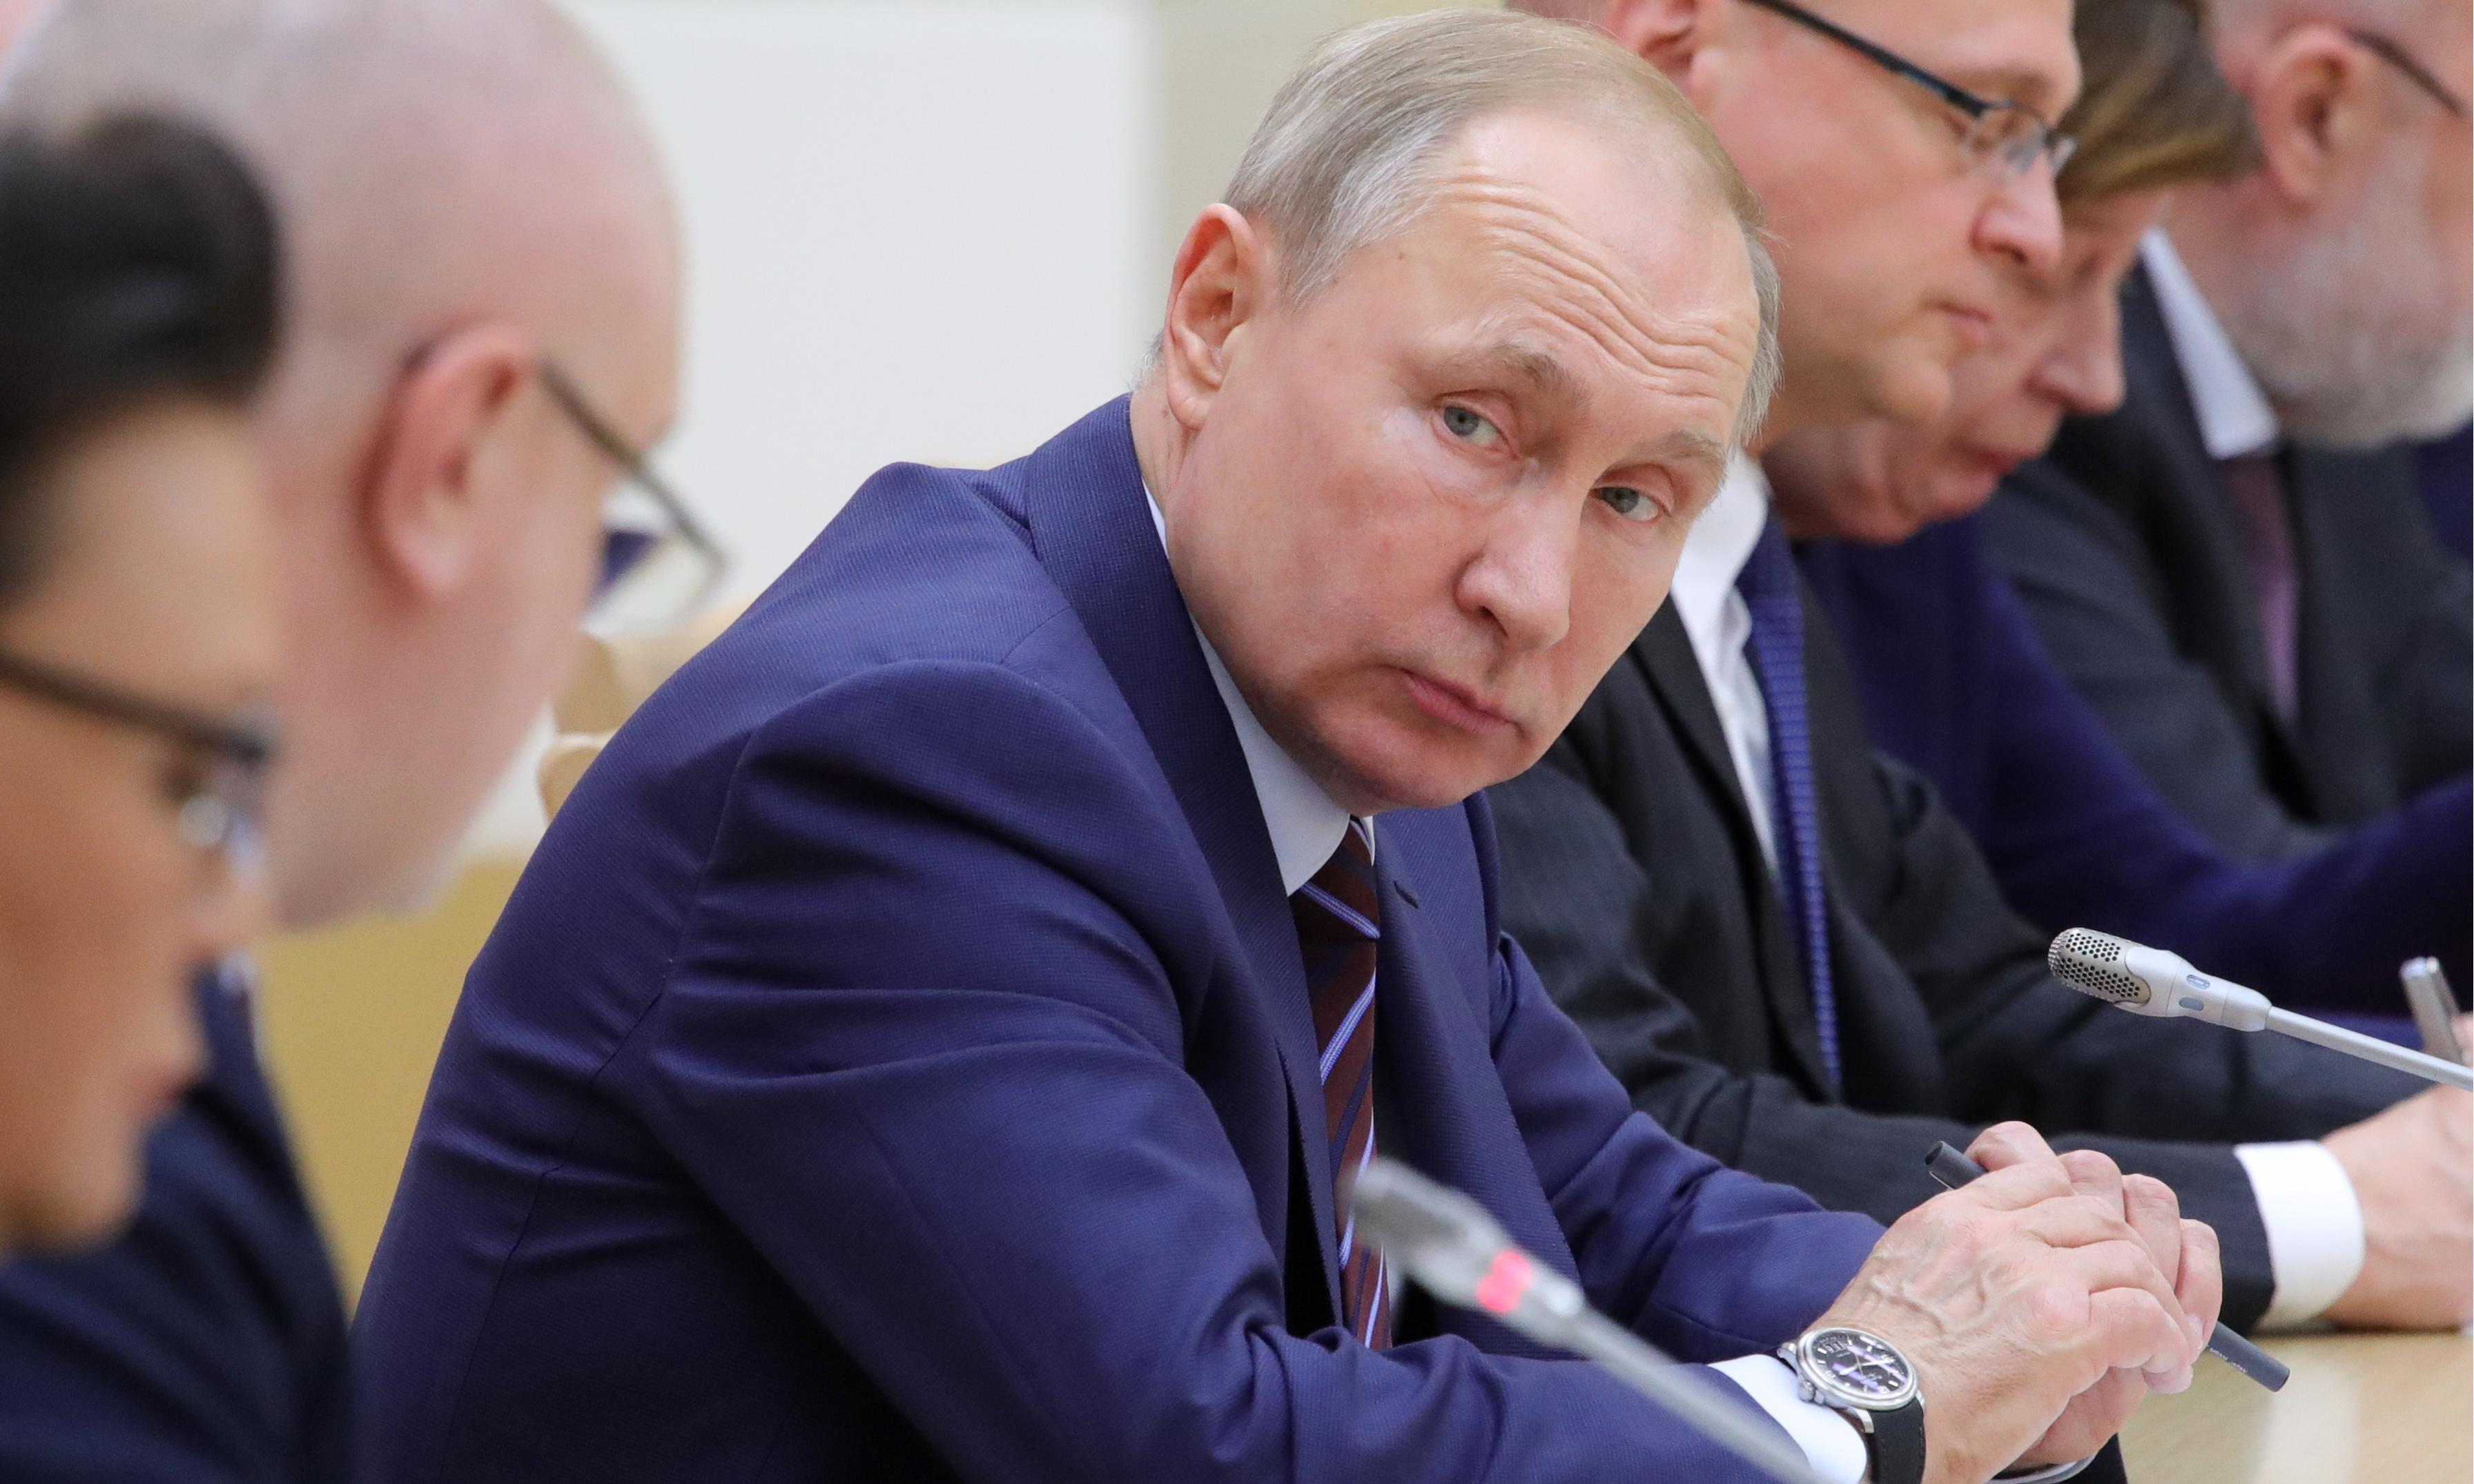 Putin's ministers were not told of resignation plans in advance